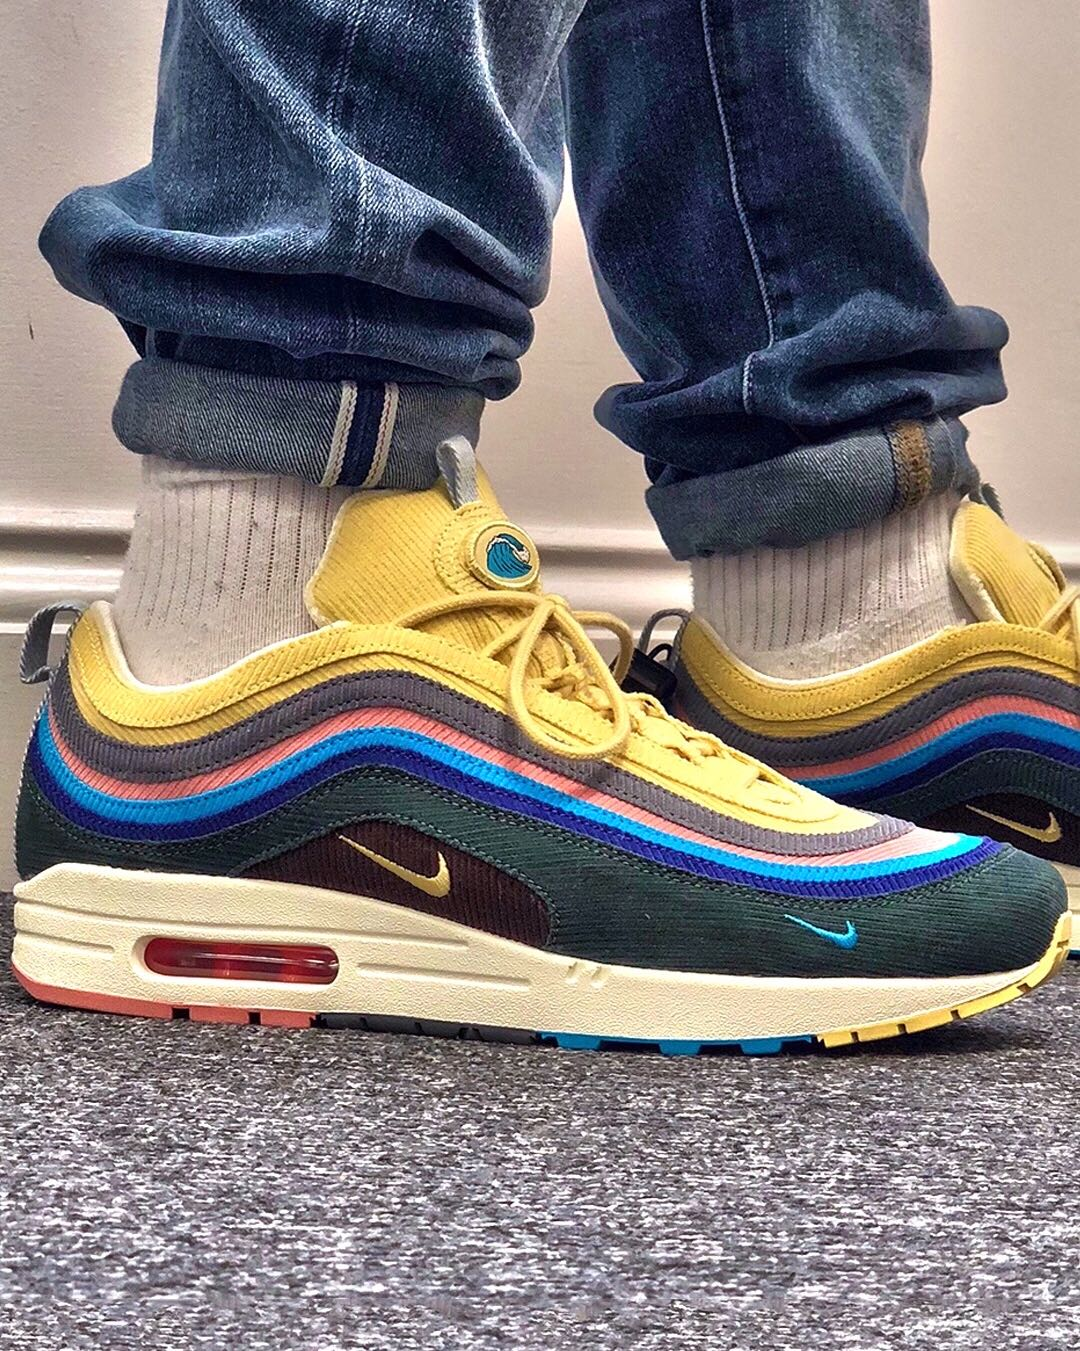 Nike Air Max 1/97 'Sean Wotherspoon' - 2017